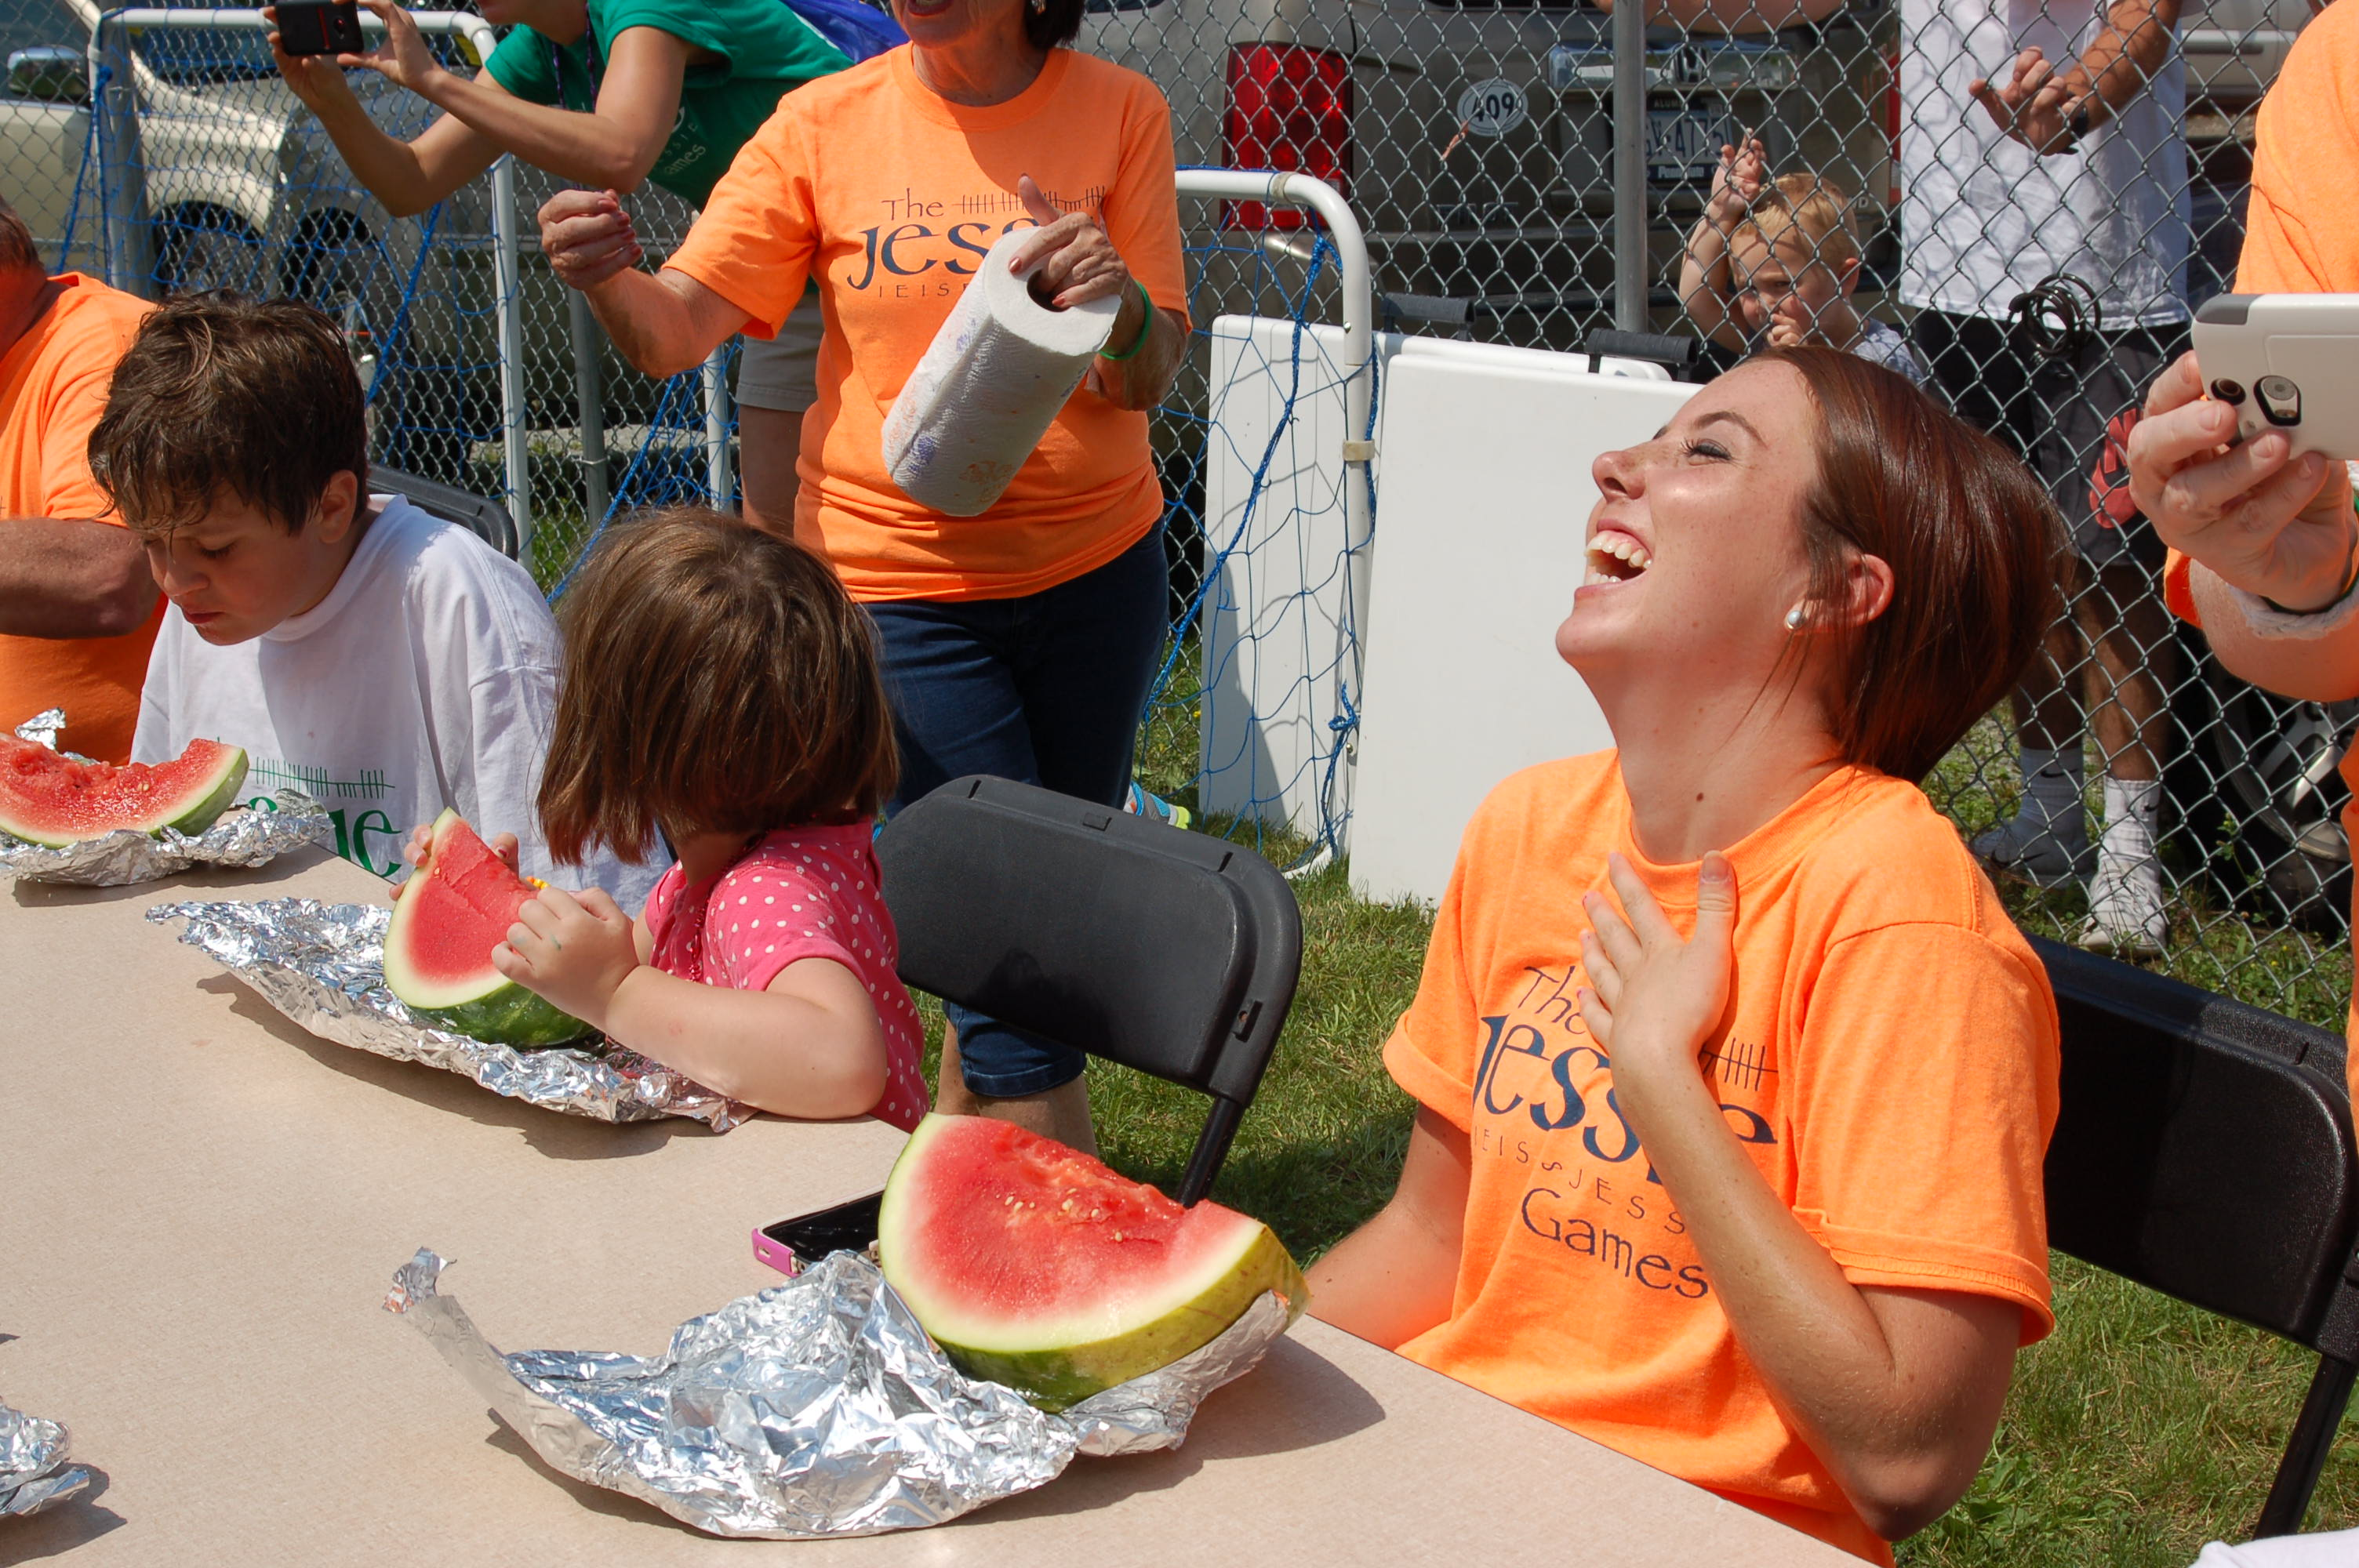 Having a blast at the watermelon eating contest at the 2015 Jessie Games.